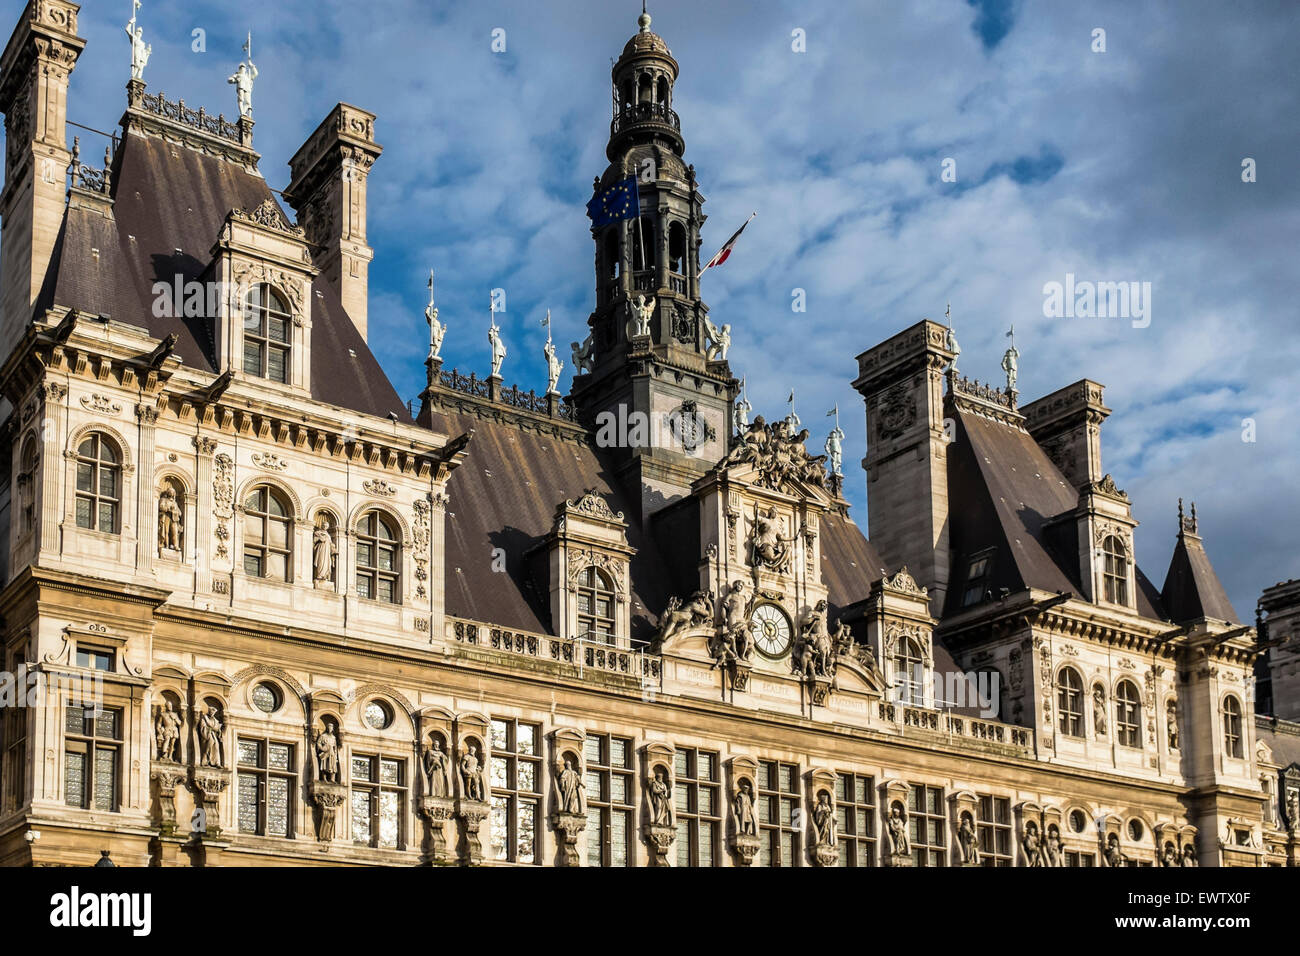 Paris Hotel de Ville, Mairie or city hall housing city's administration. French renaissance style architecture. - Stock Image